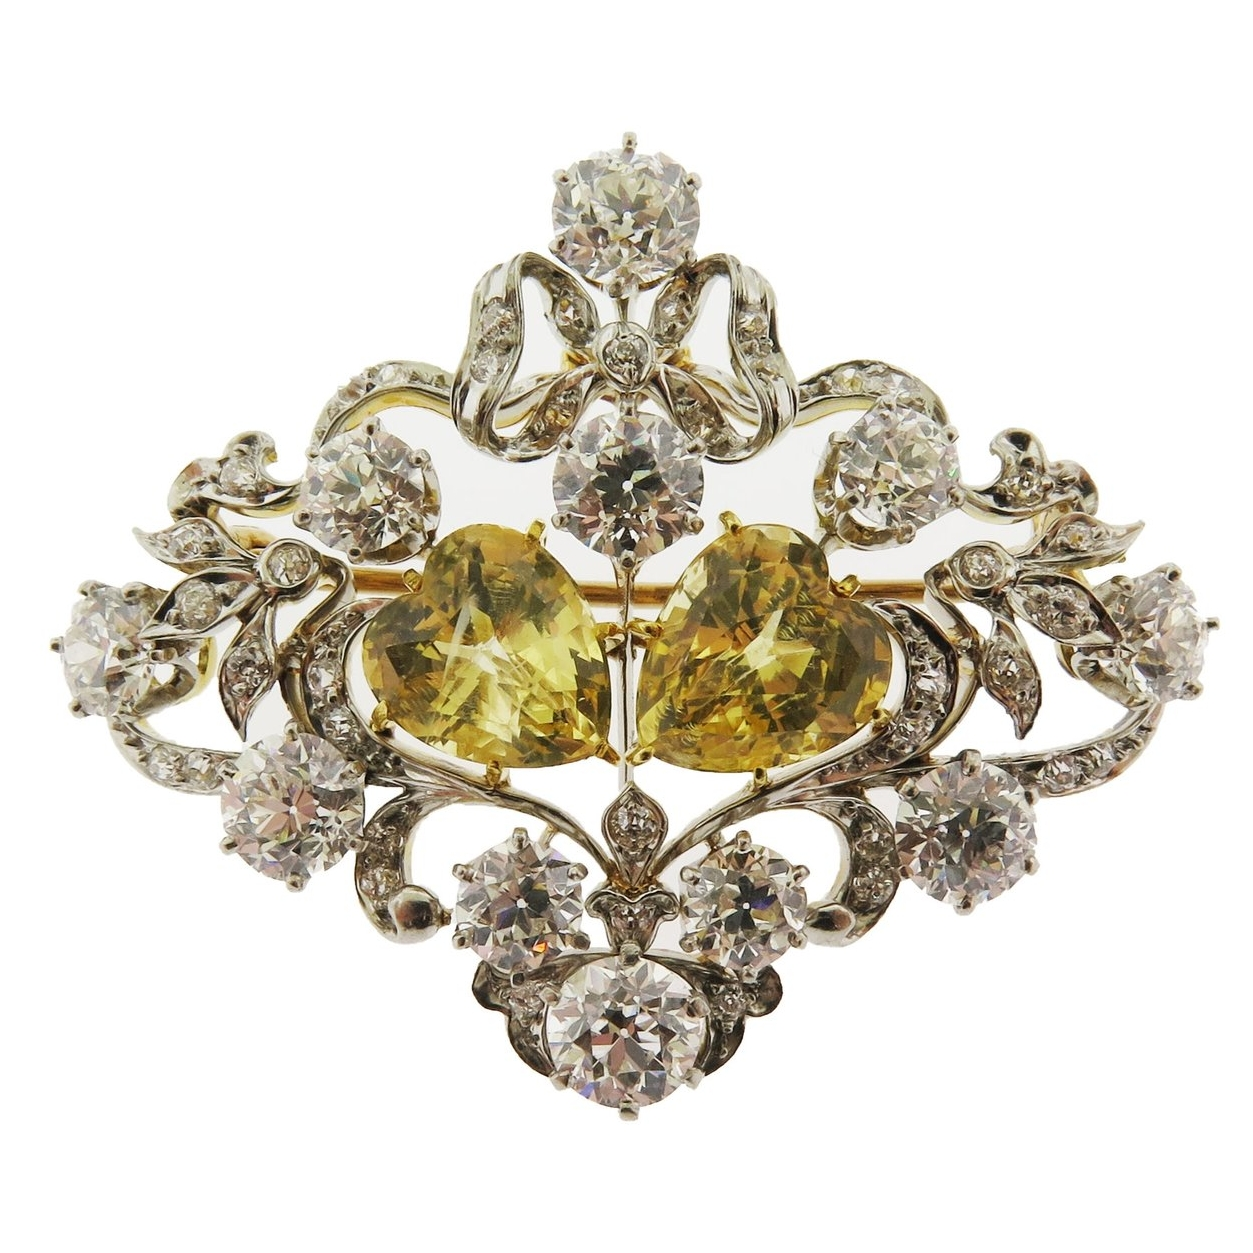 F. Walter Lawrence Diamond Brooch